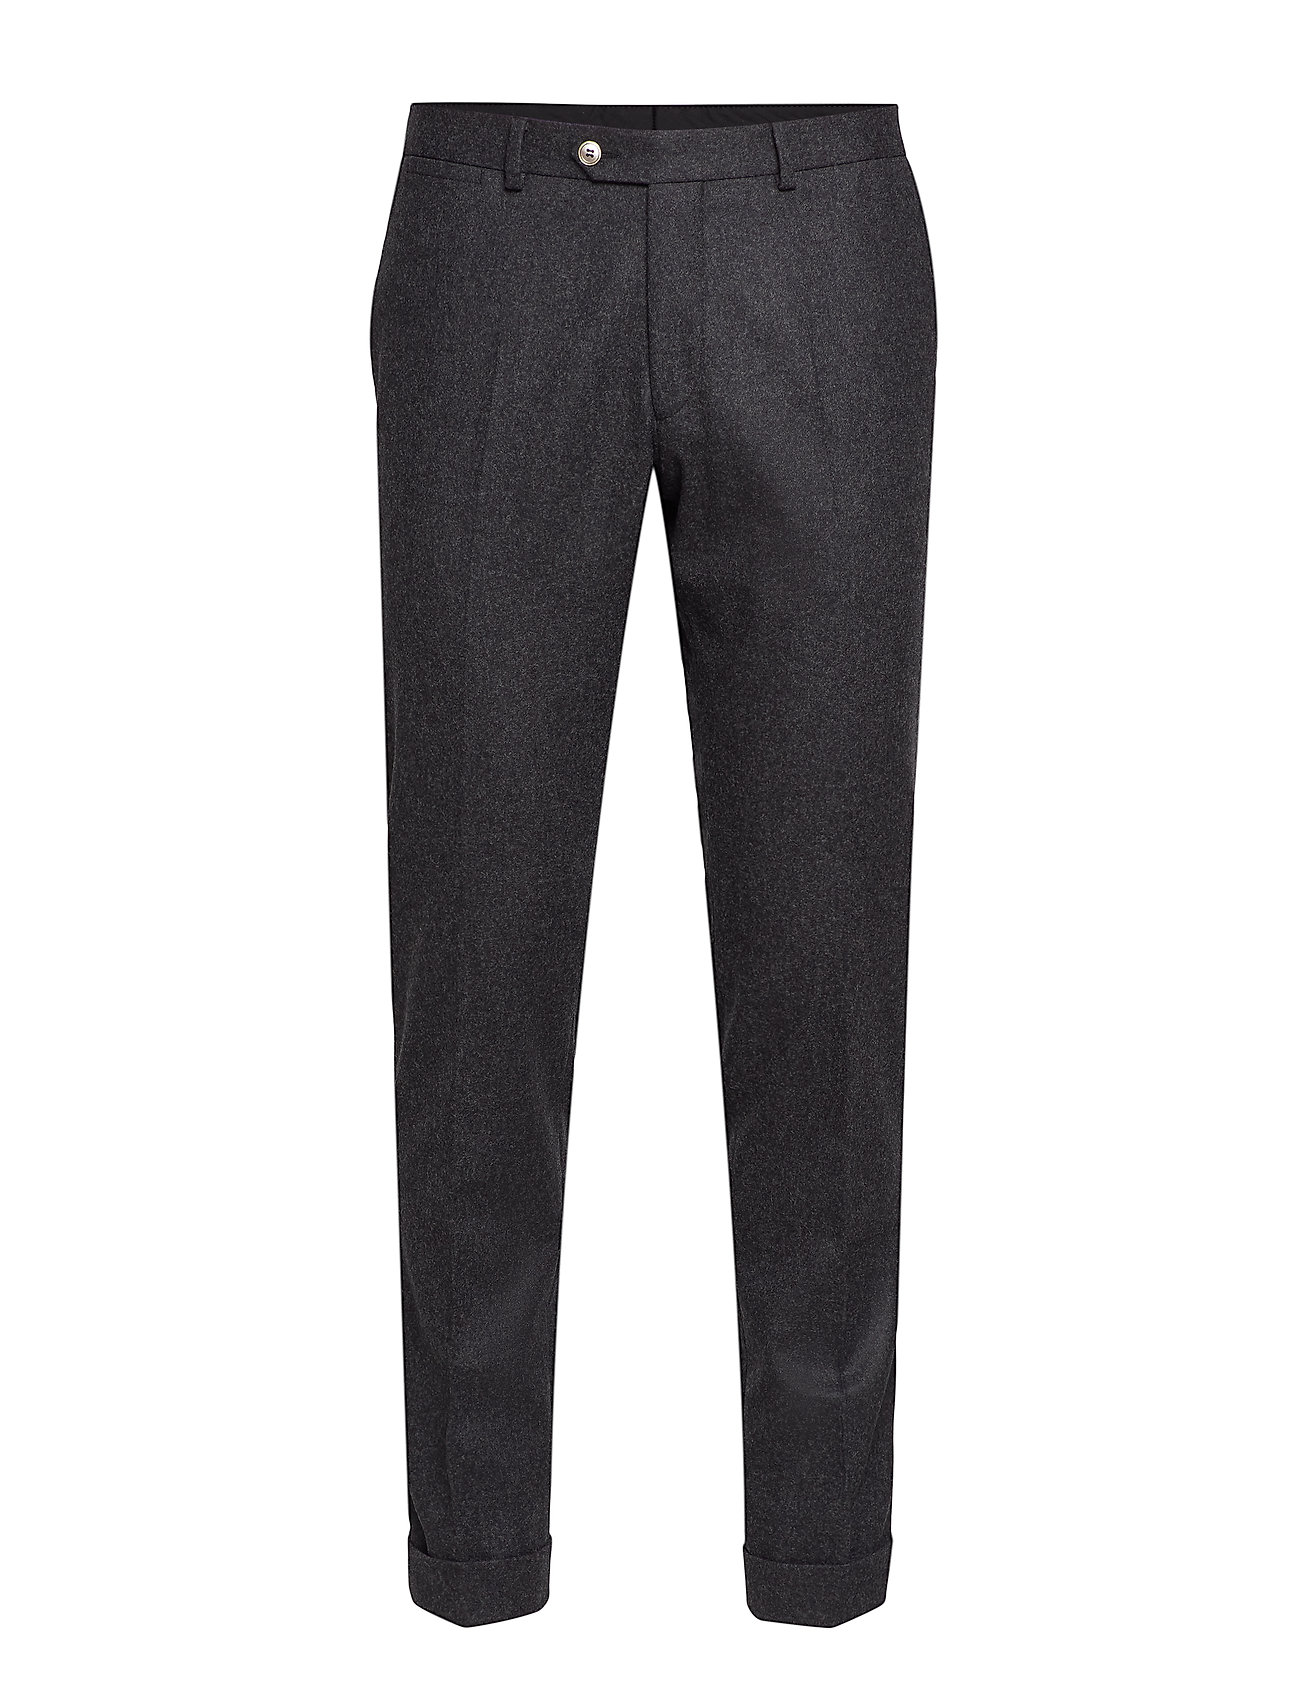 Oscar Jacobson Dean Trousers - 110 - DARK GREY